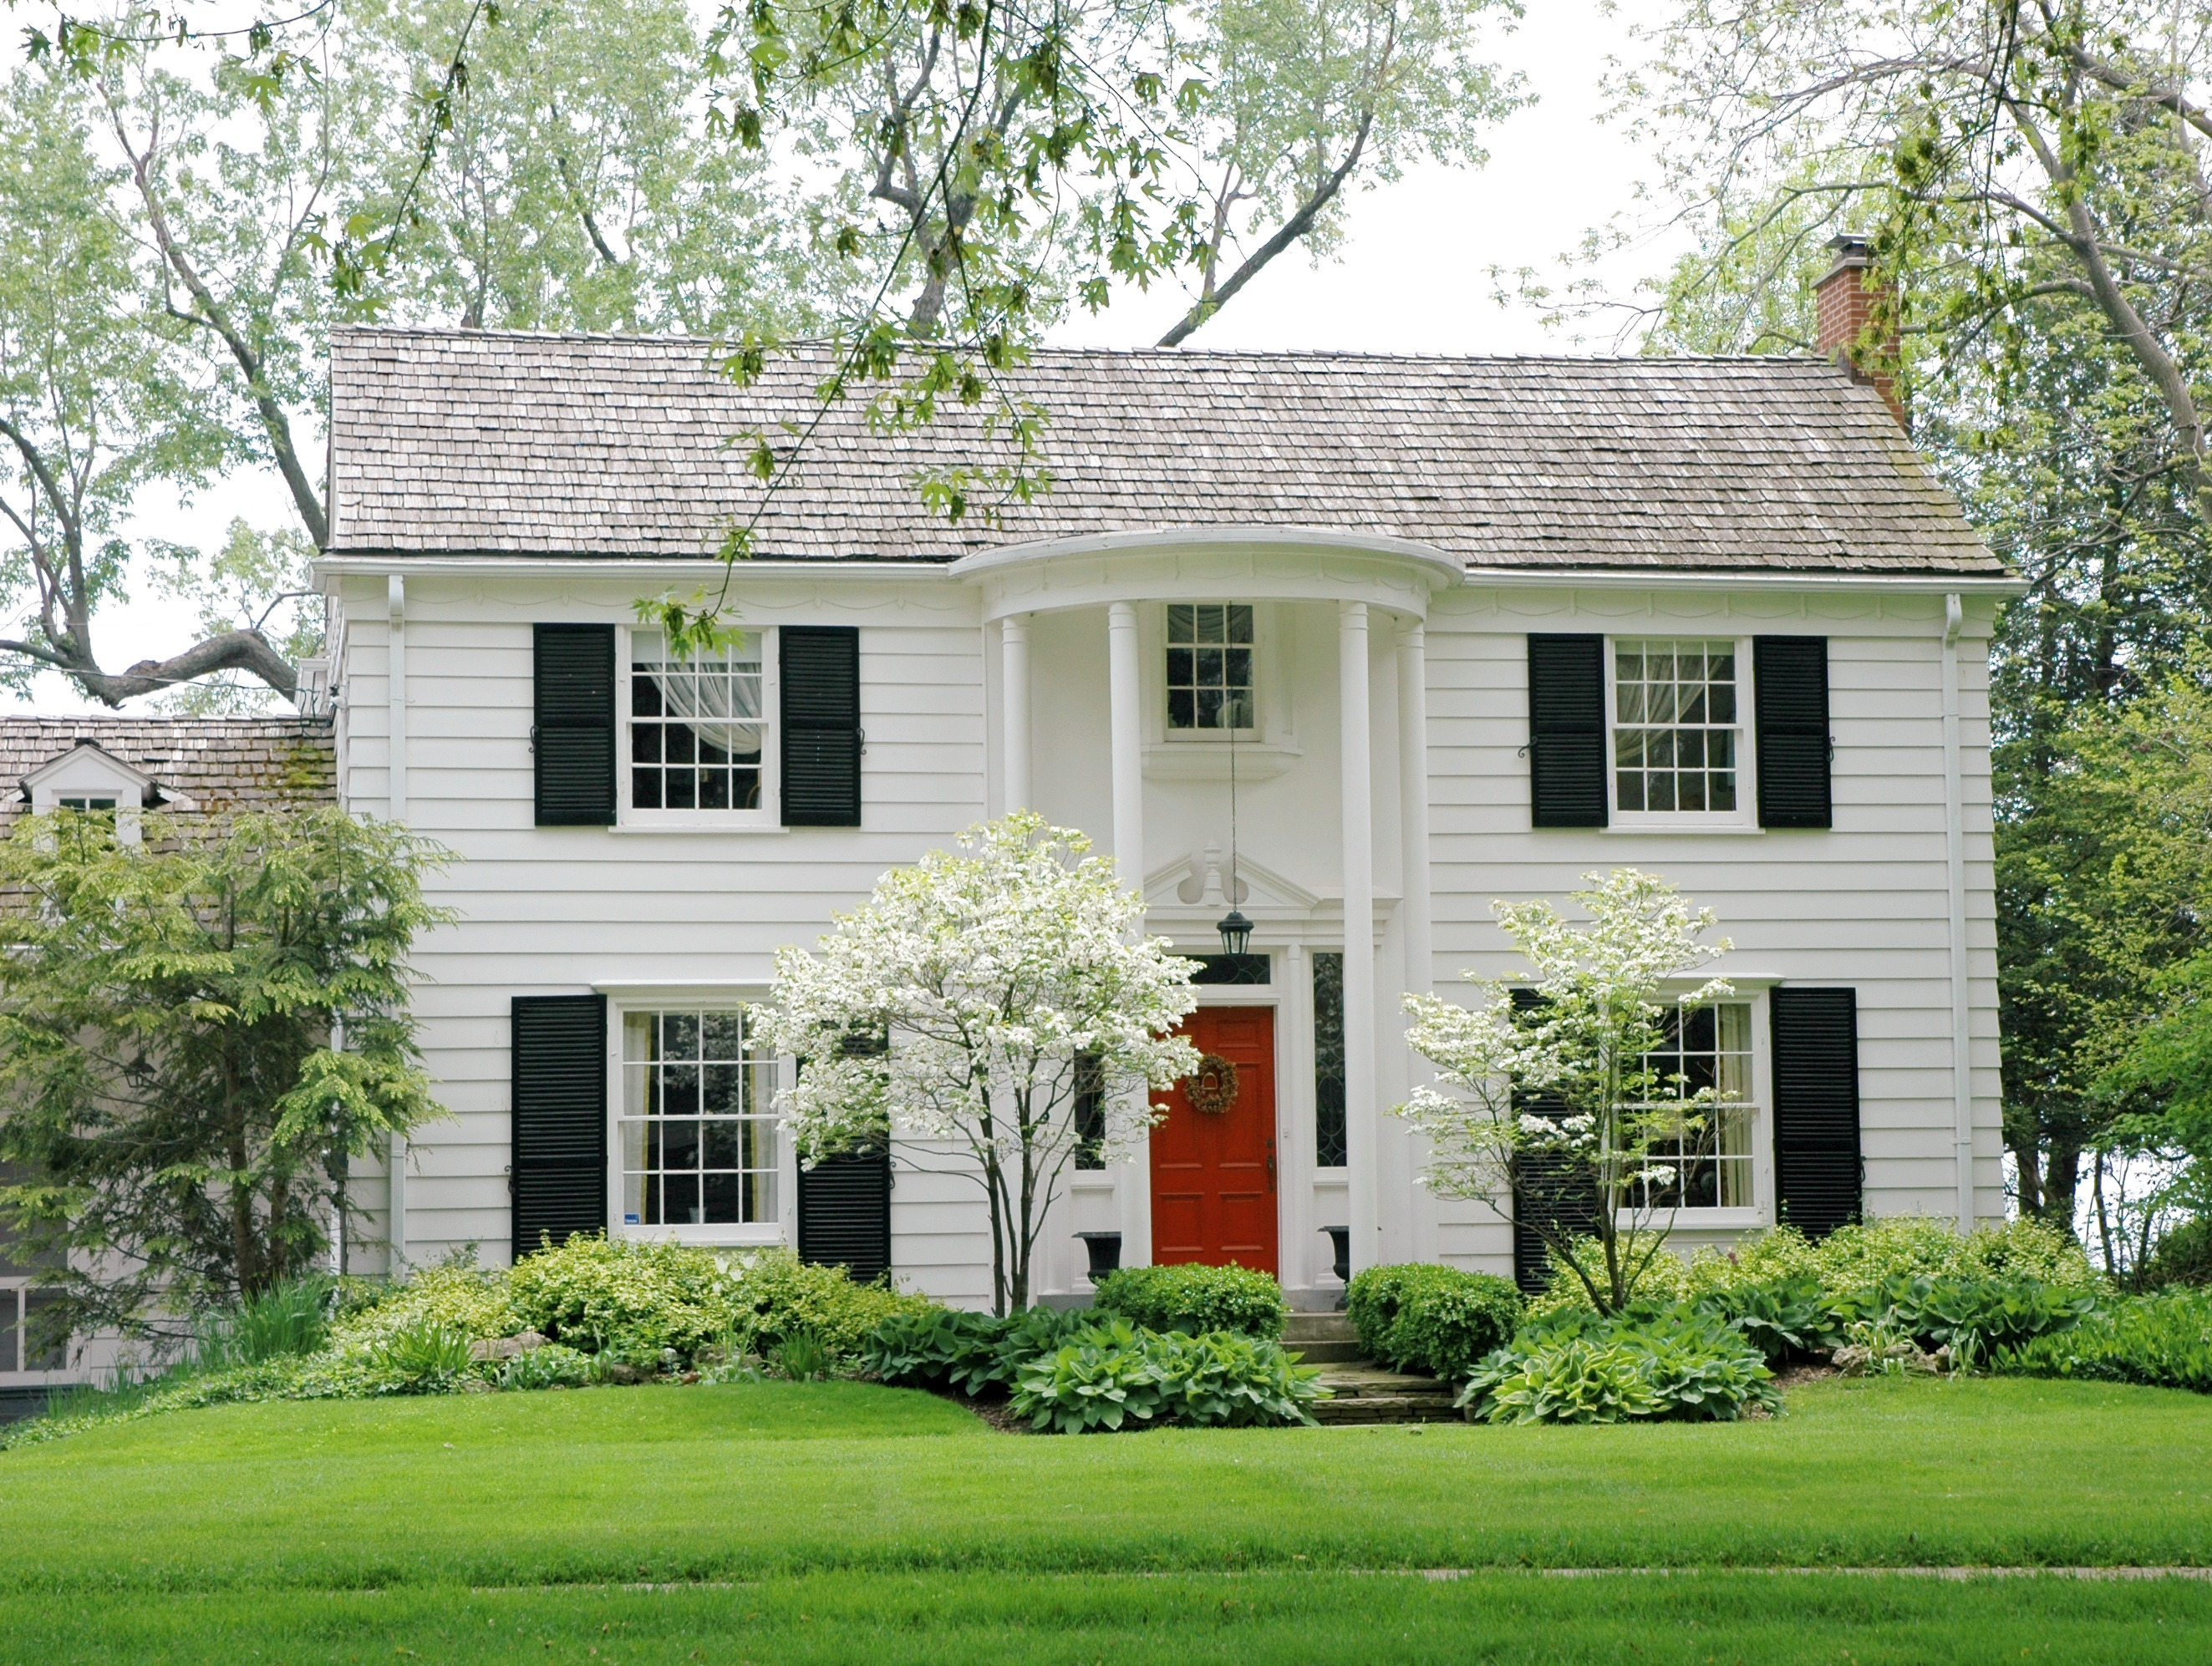 A white colonial house with red front door, black shutters, tall white columns, and bright green front yard.